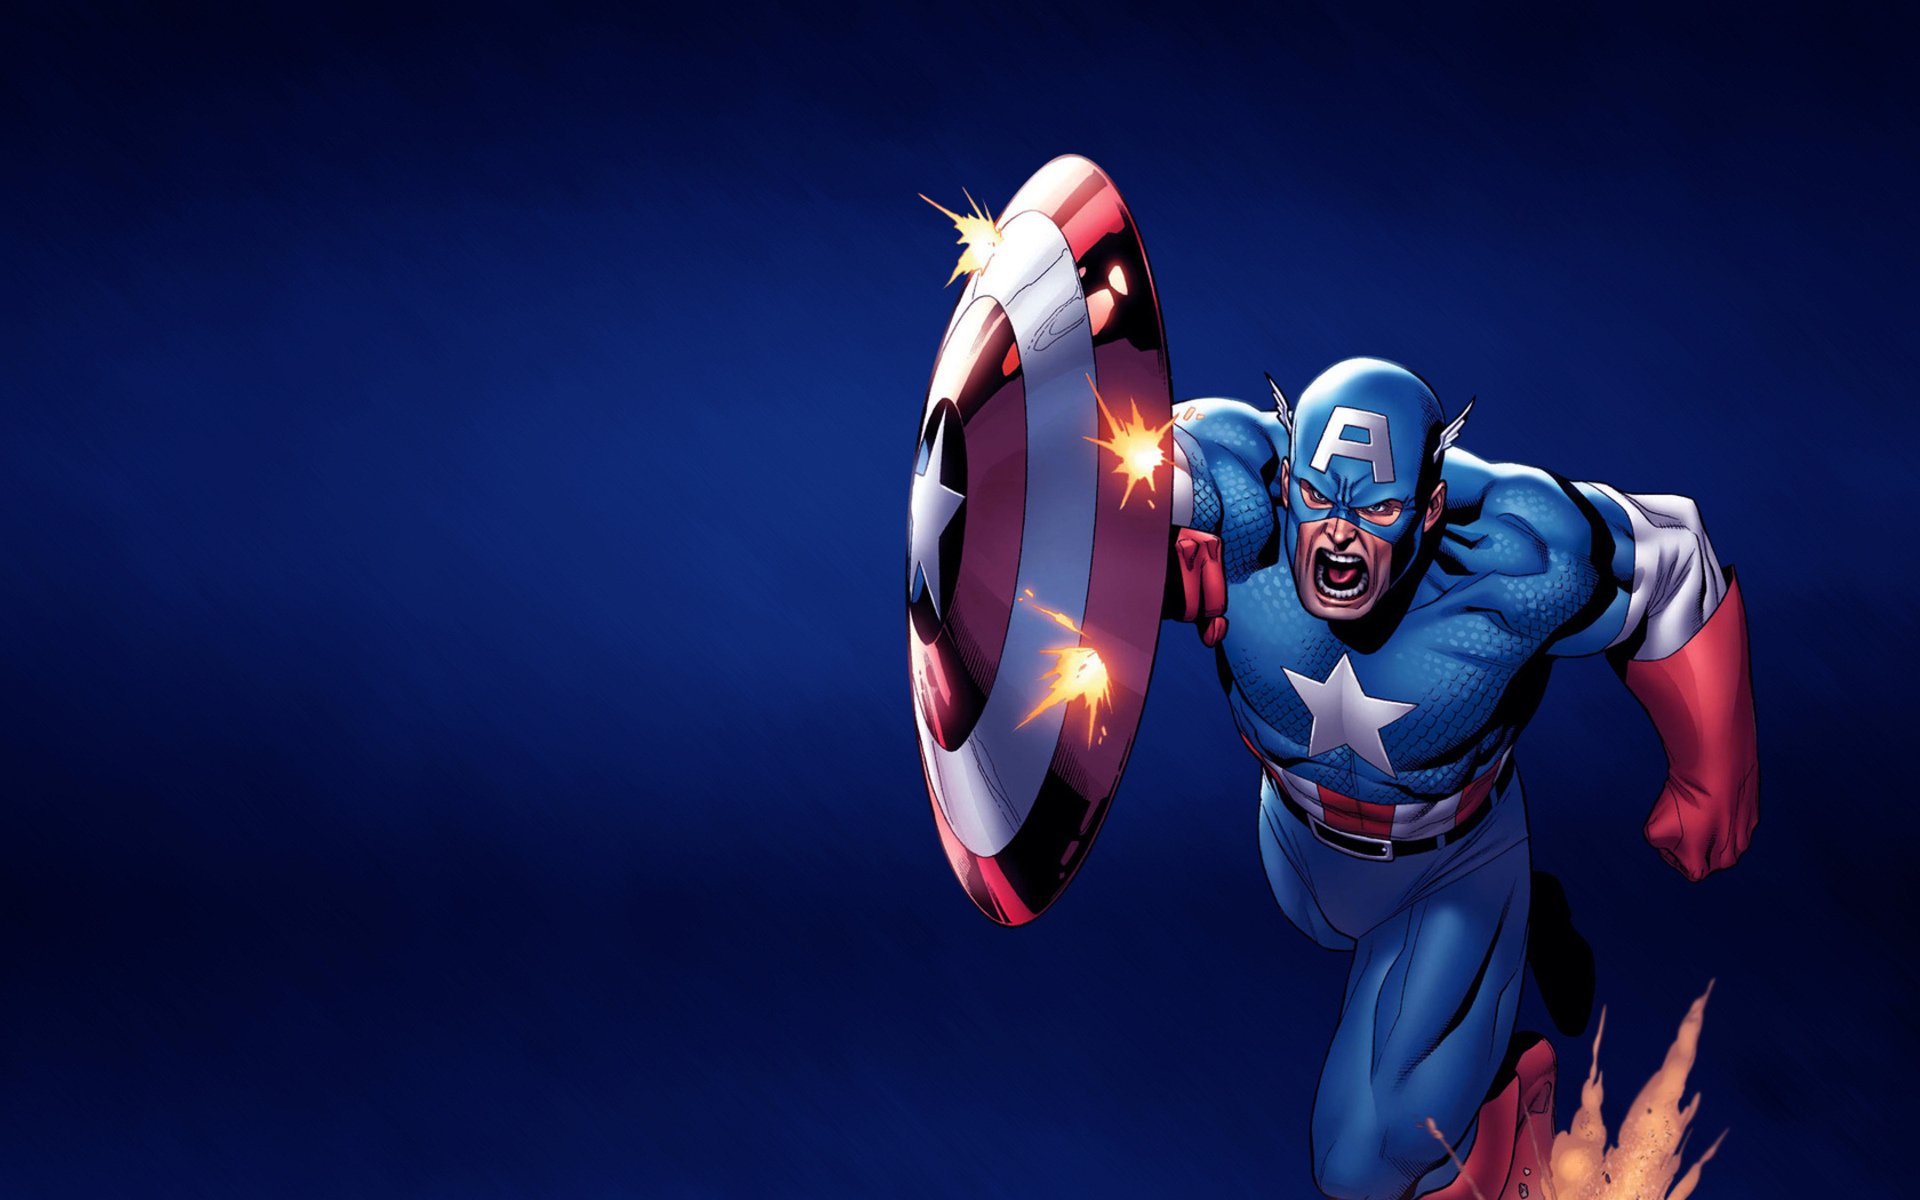 Hd wallpaper of captain america - Captain America Hd Wallpaper Background Id 359910